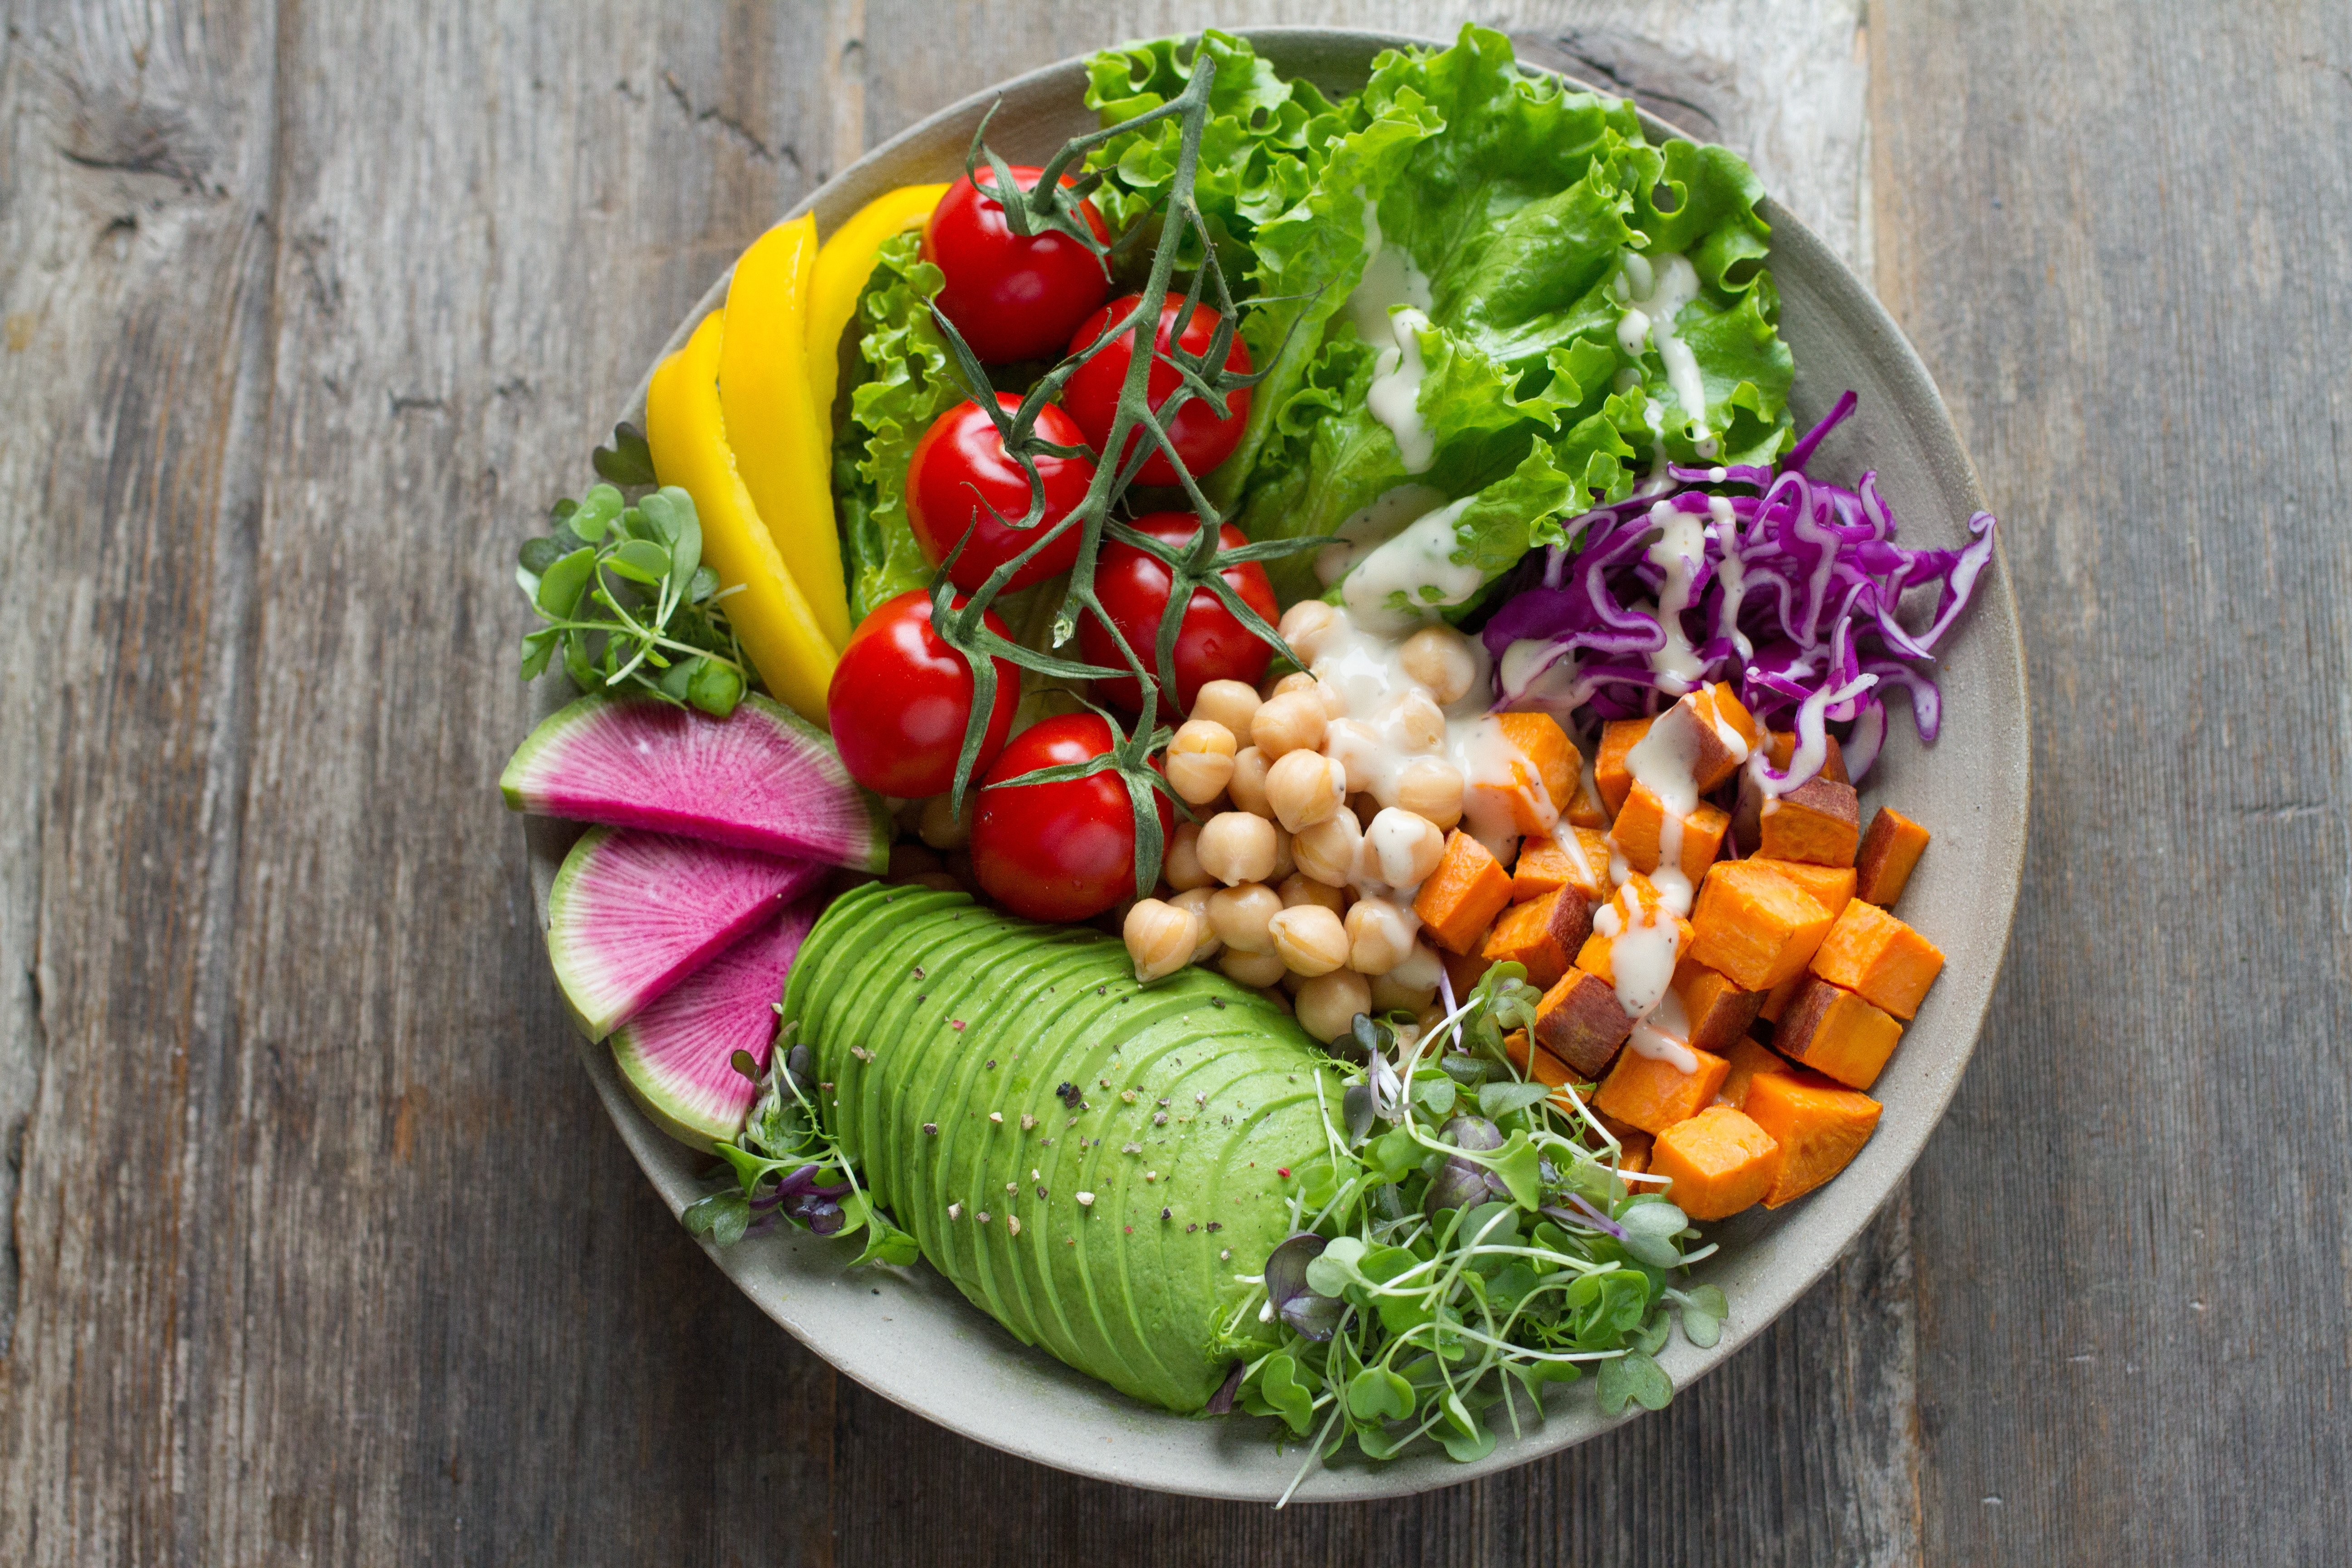 Can our diet alone help us heal from cancer?